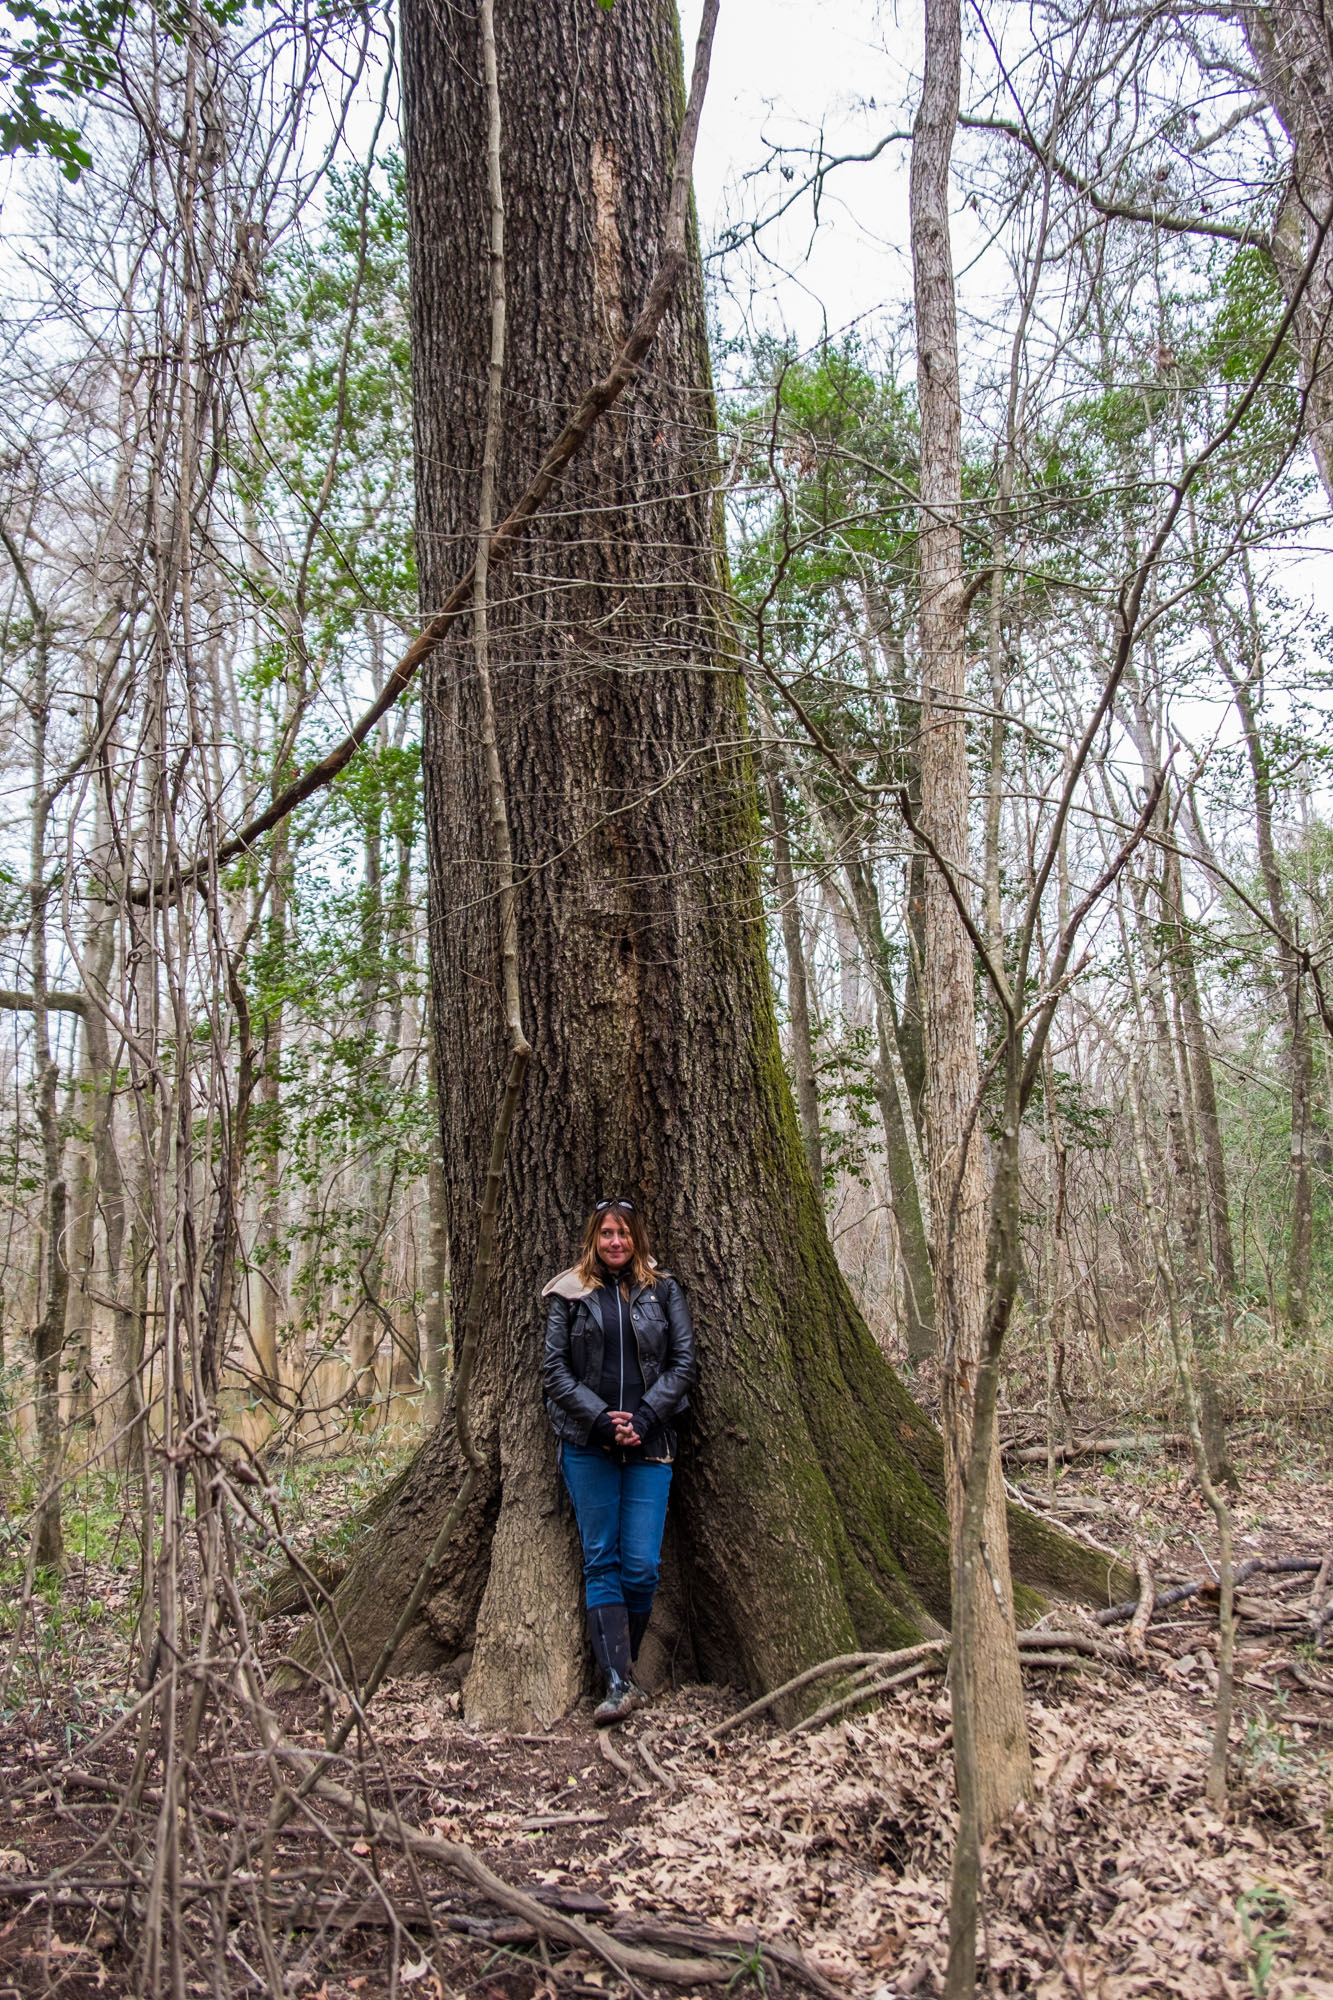 Stef poses next to a big old tree.